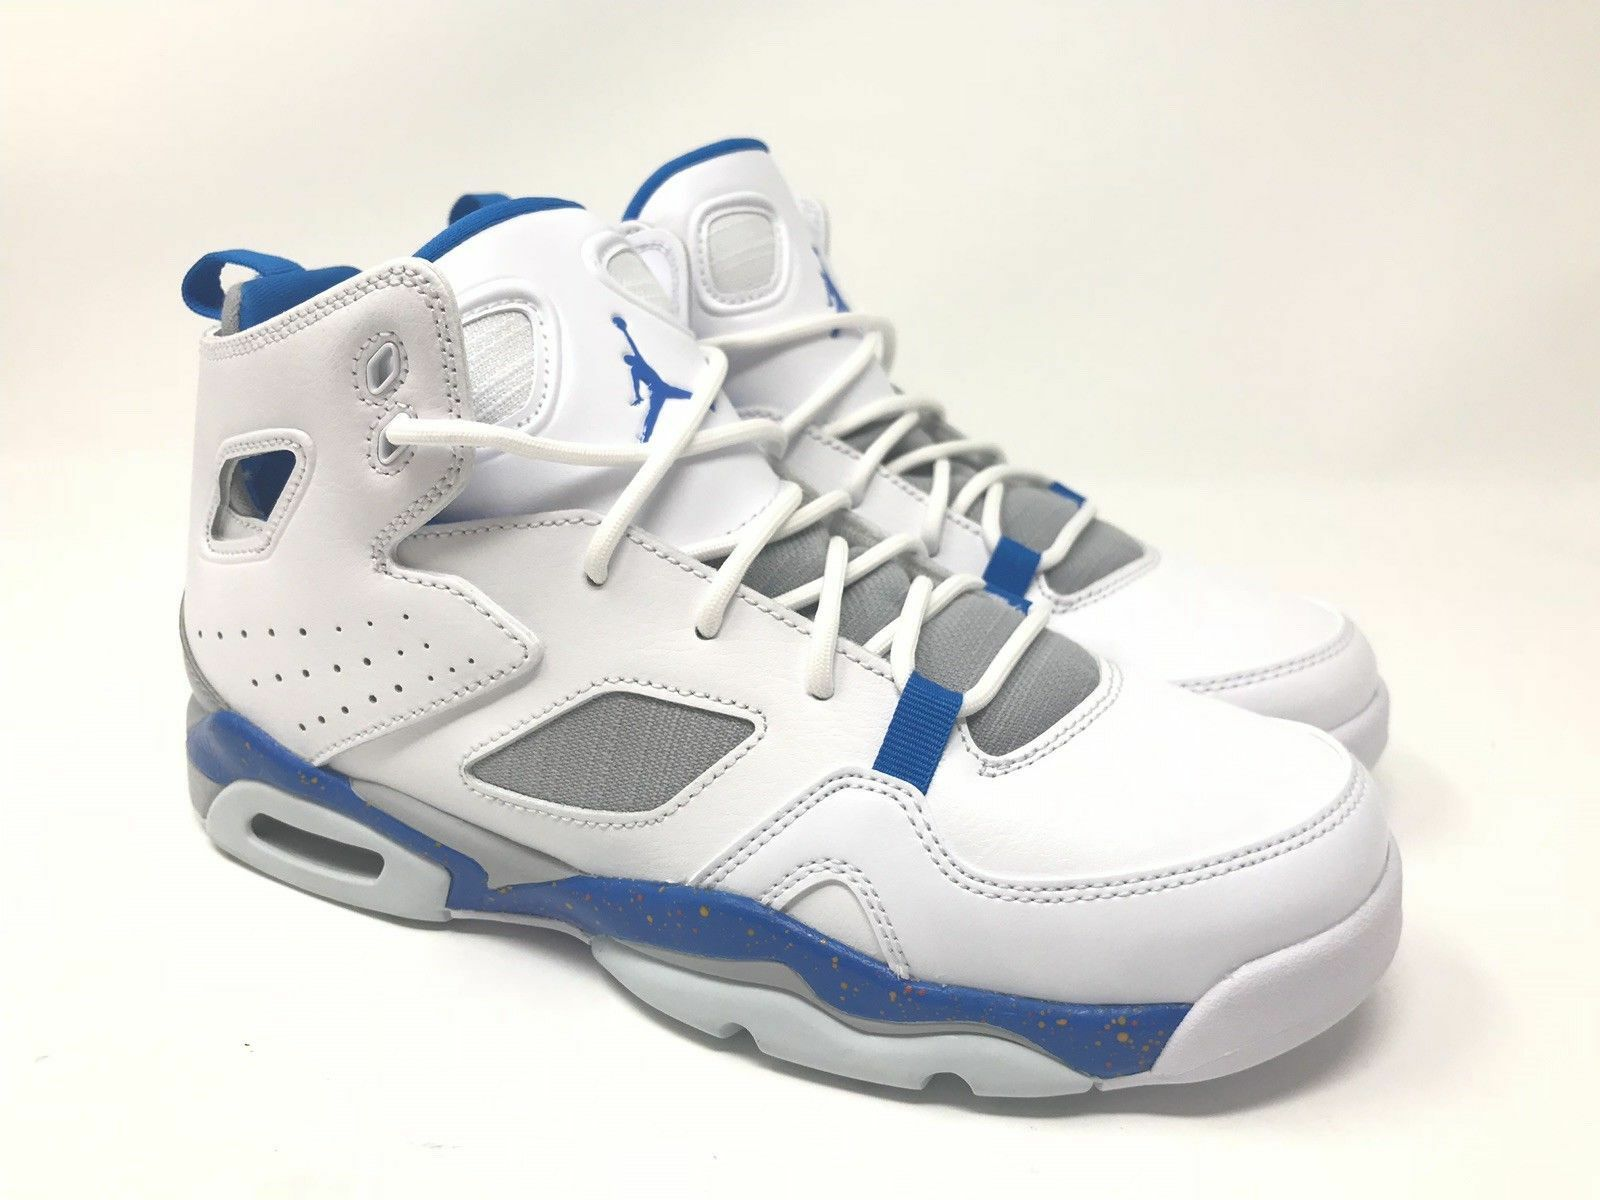 new concept c19ae 72821 Details about NIke Air Jordan Flight Club 91 Bball GS White Blue Wolf Grey  (555472 104) Sz 7Y